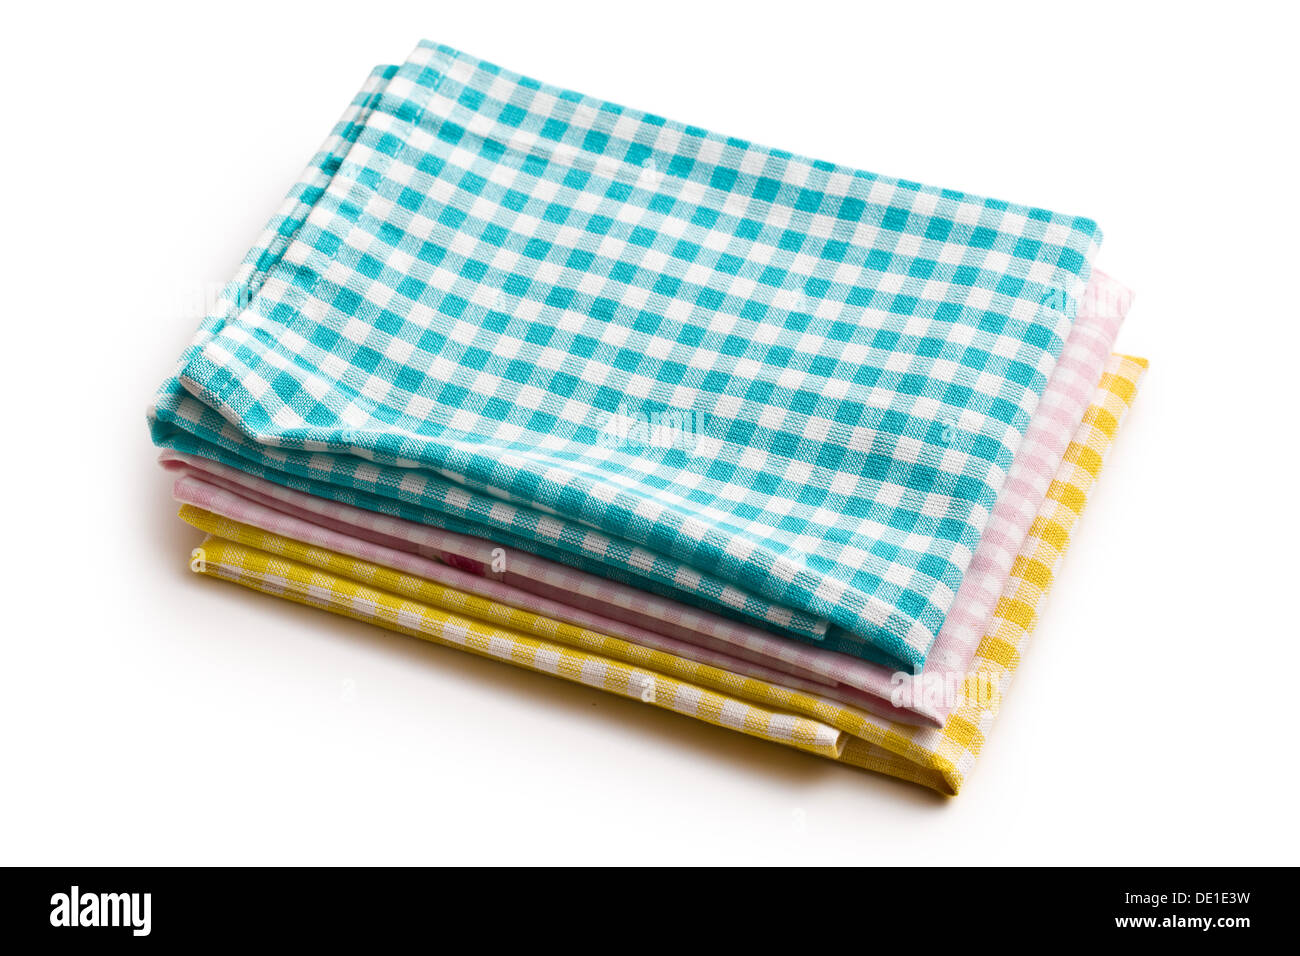 various teal kitchen. Various Kitchen Towels On White Background Teal